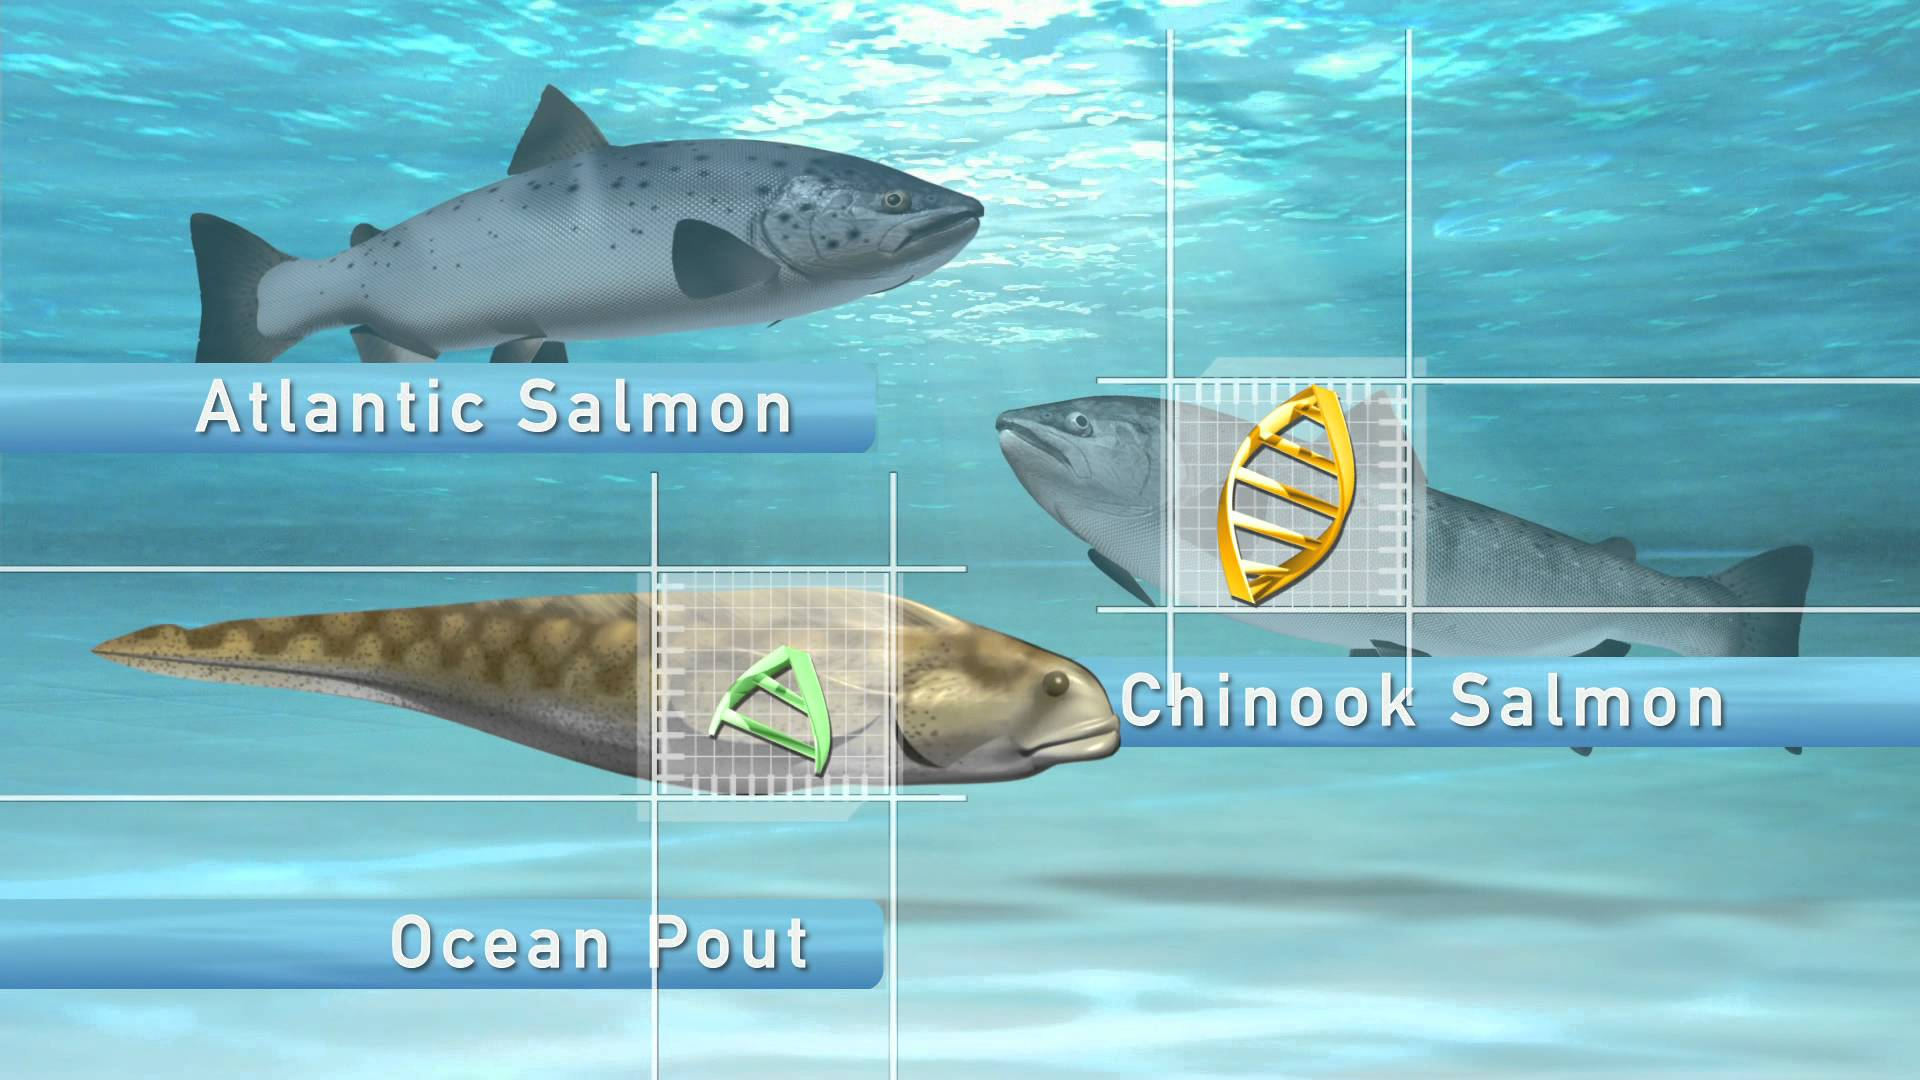 Genetically Modified Salmon - Combining the DNA of Chinook Salmon and Ocean Pout